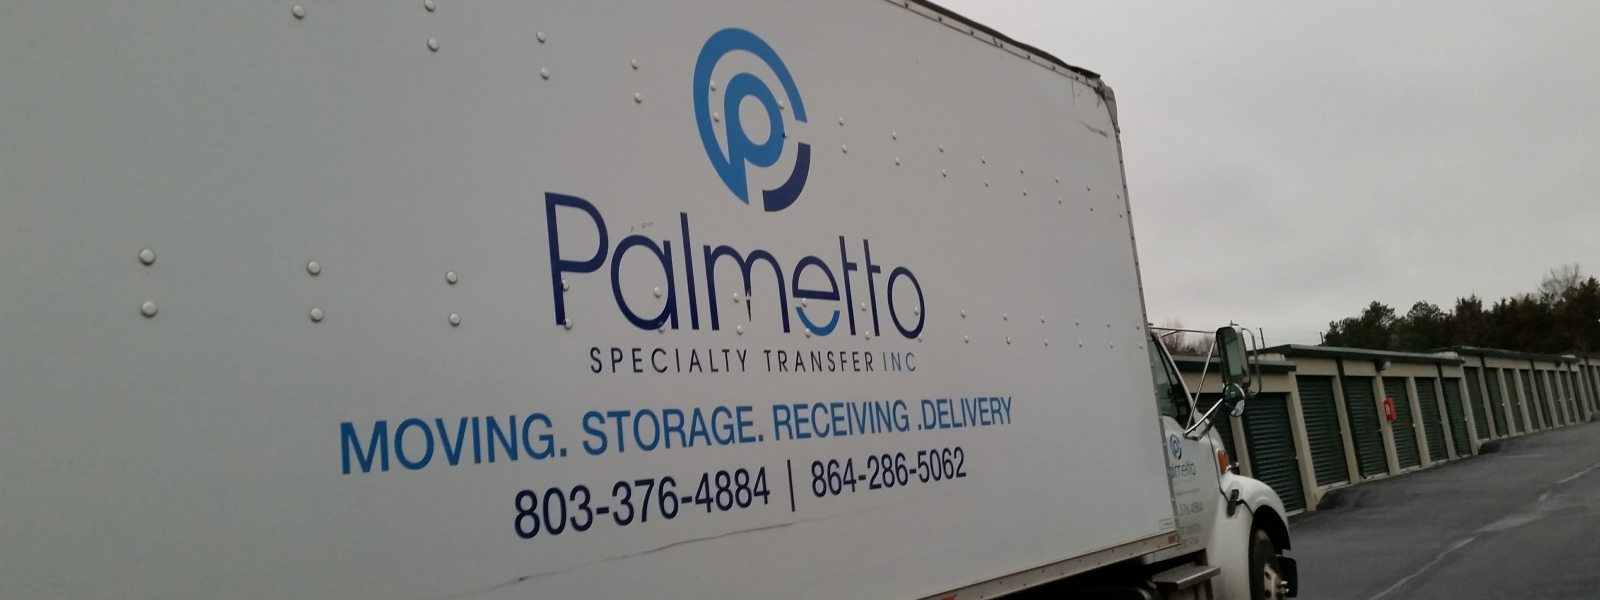 Palmetto Specialty Transfer Moving Truck